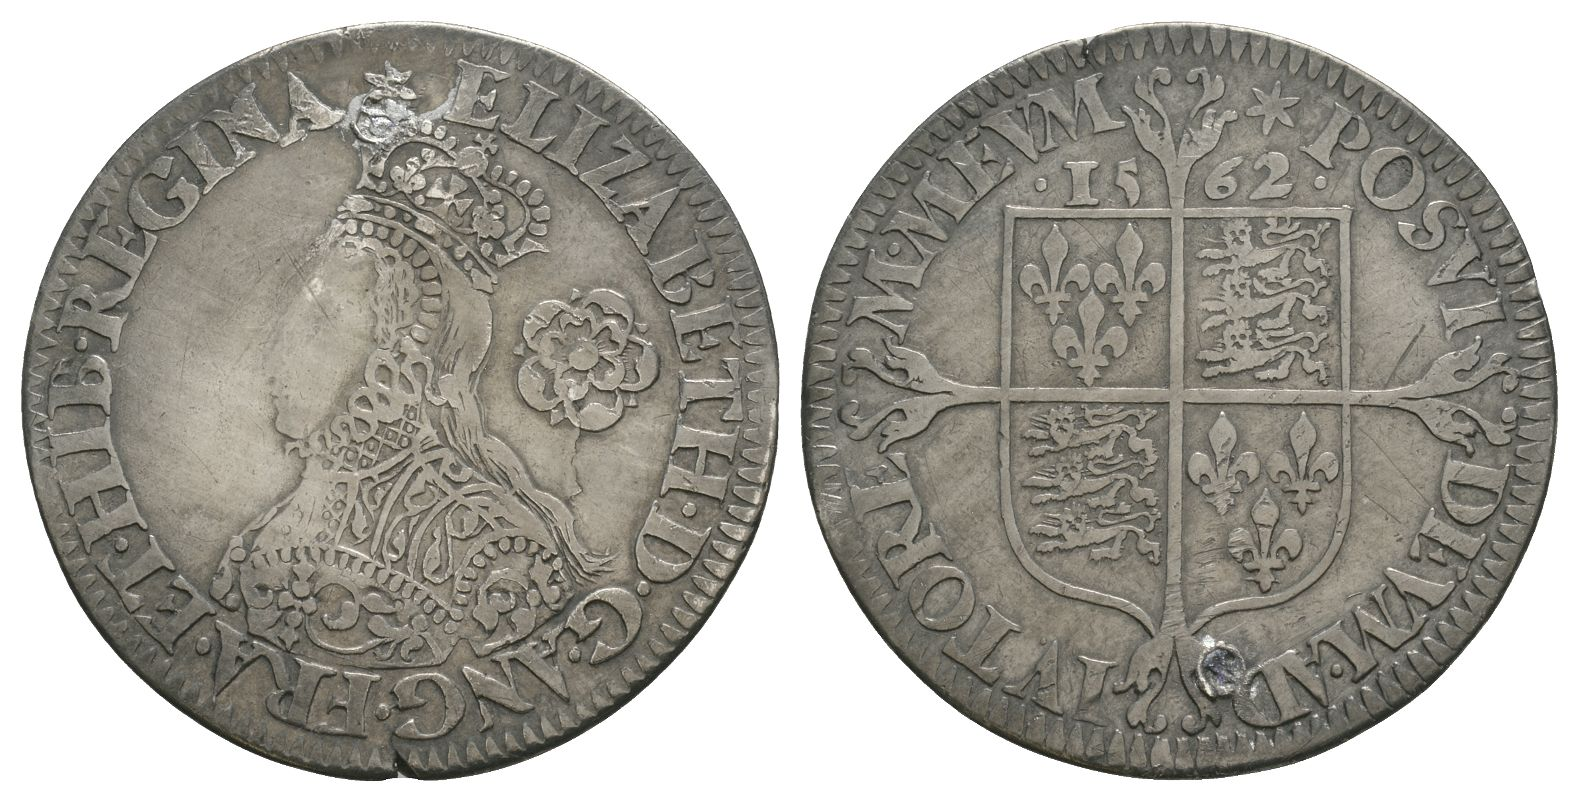 English Tudor Coins - Elizabeth I - 1562 - Milled Sixpence